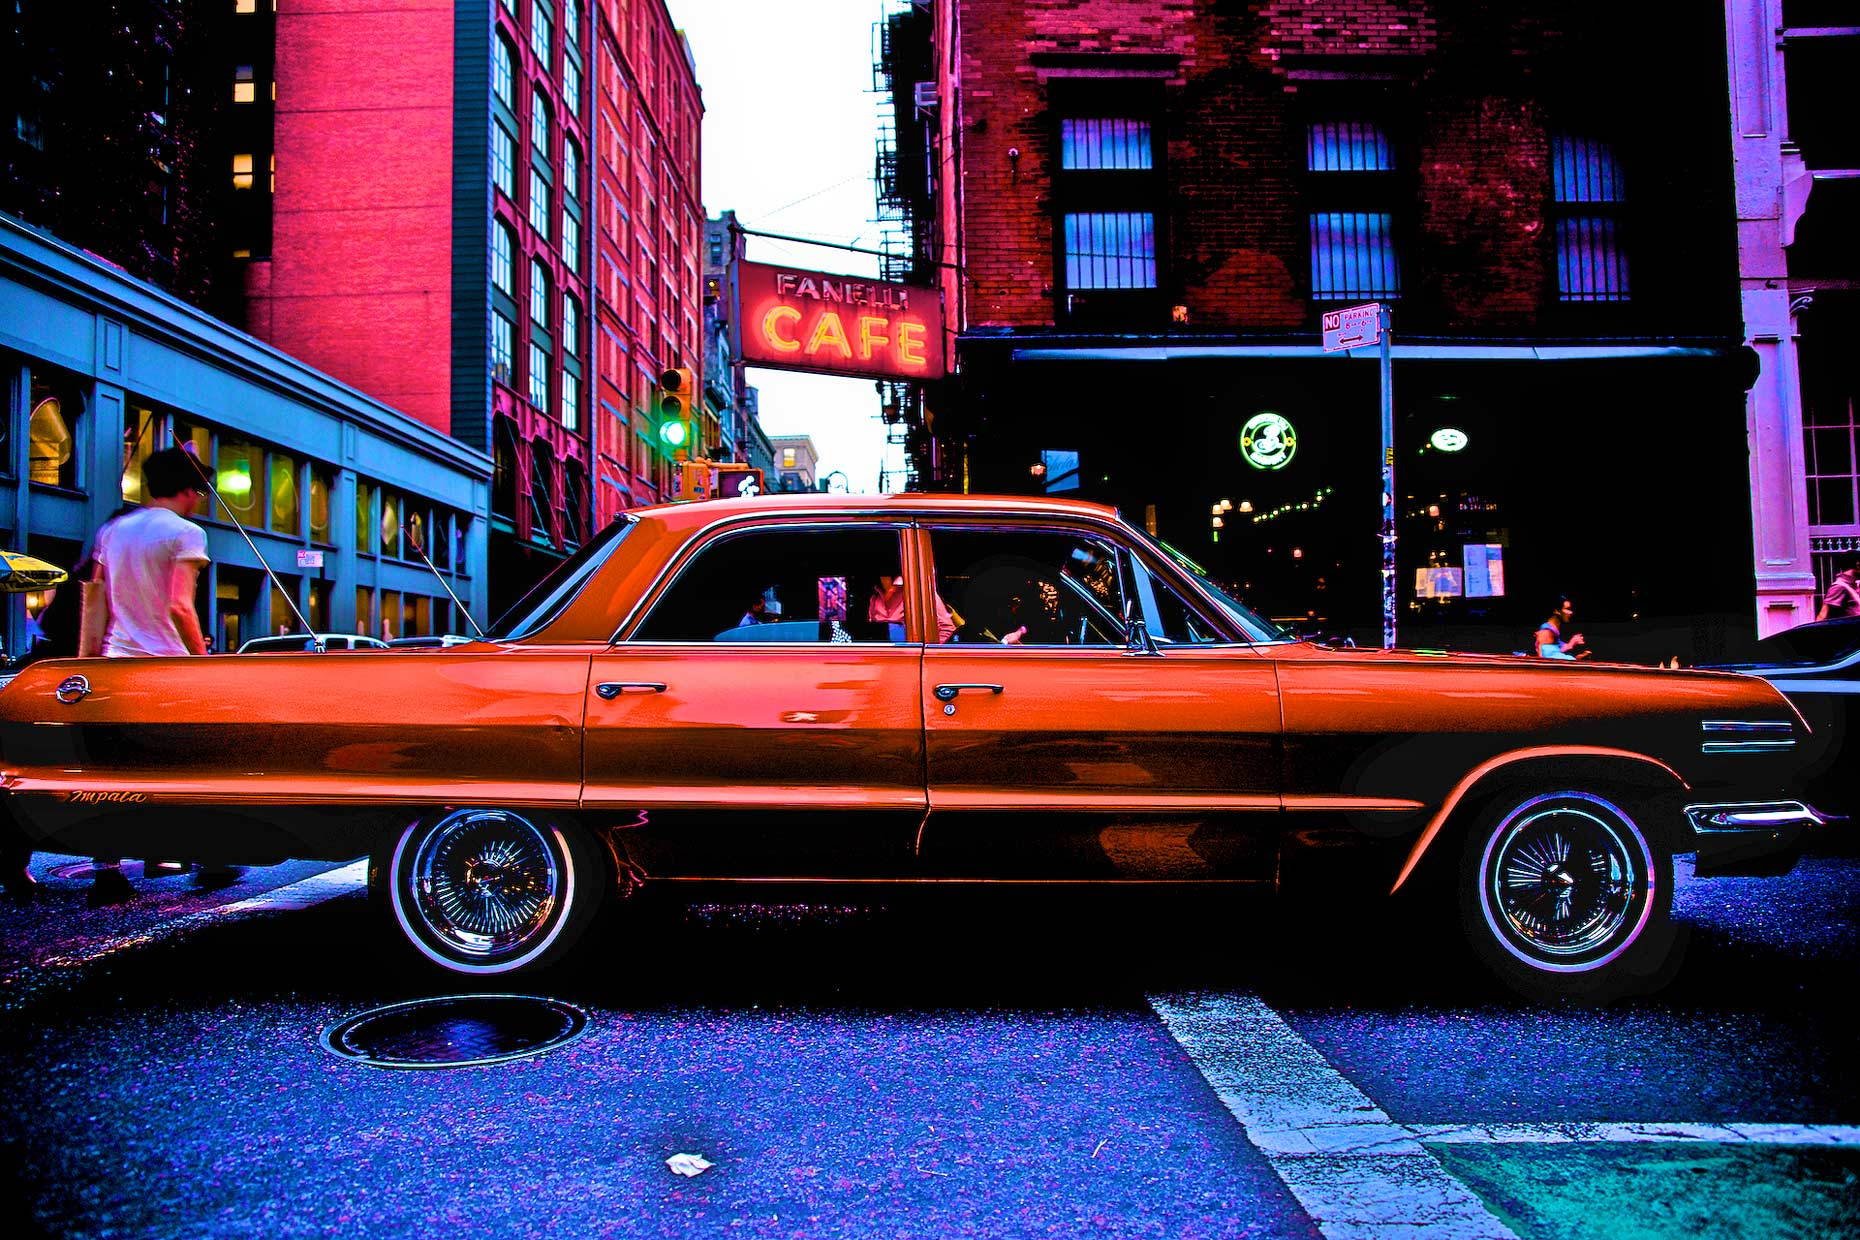 Vintage Chevy Impale Lowrider car in Soho,NYC.